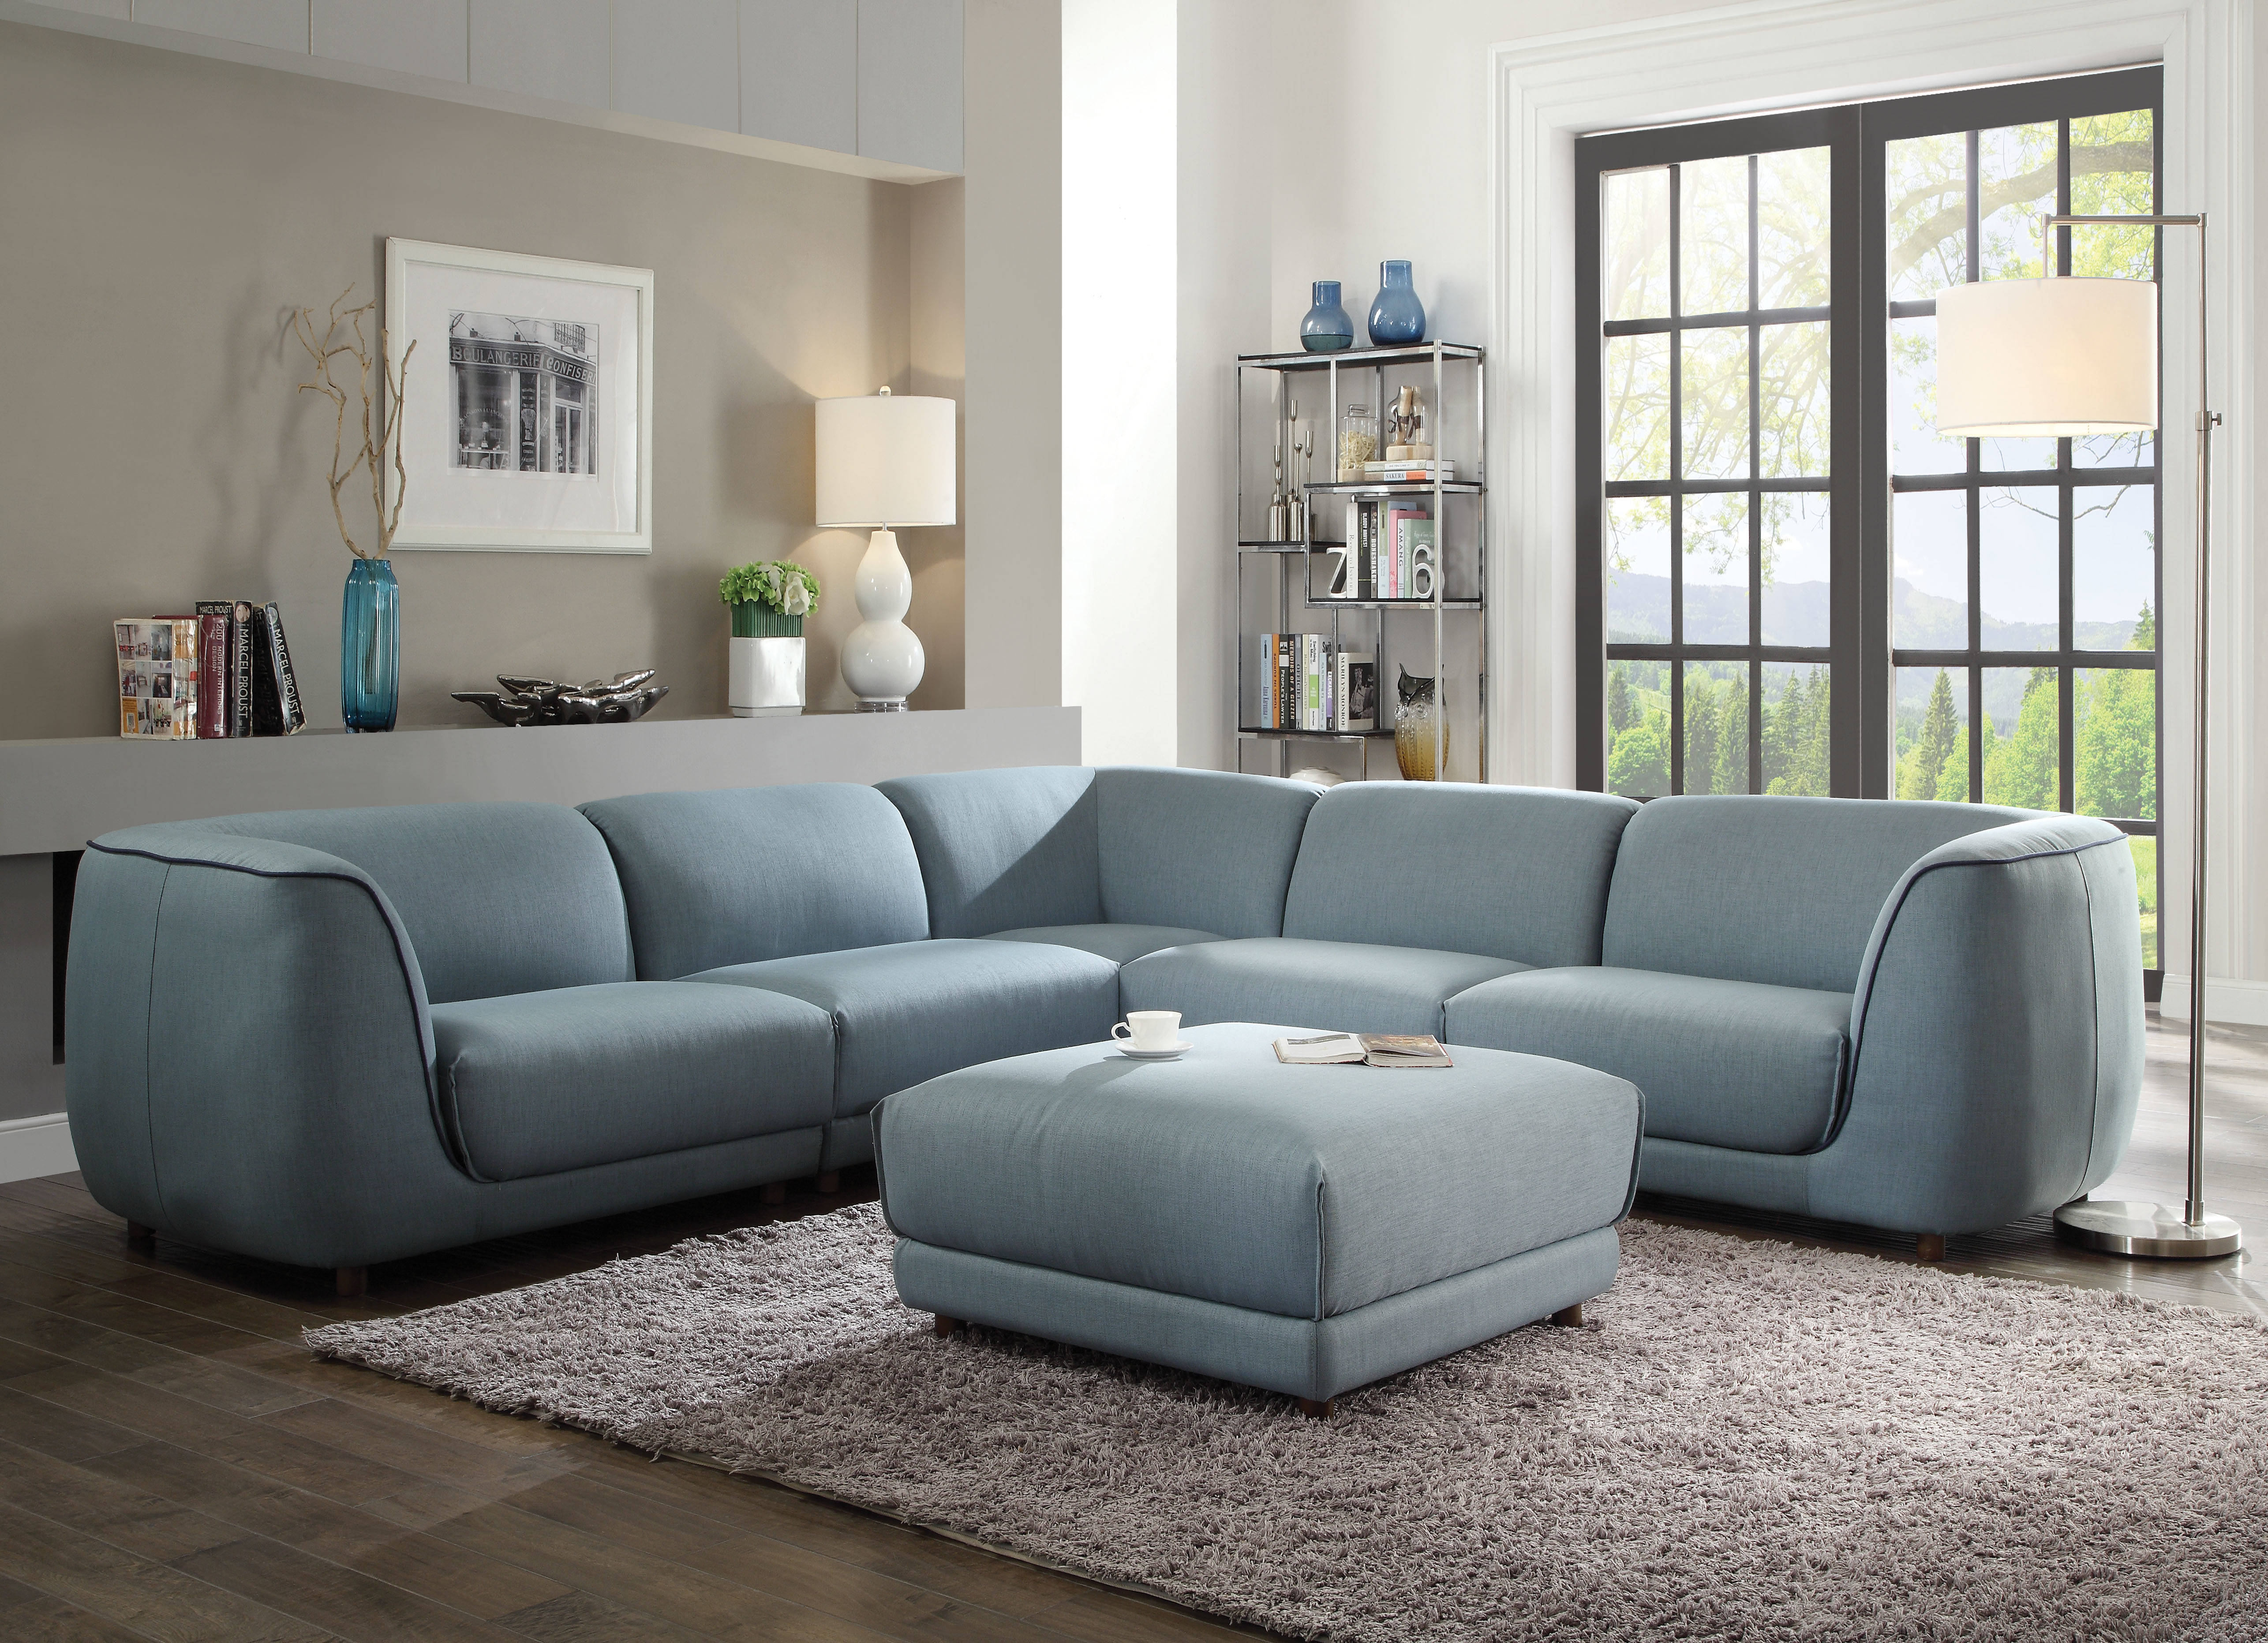 Incredible Acme Furniture Adina Light Blue Sectional Sofa With Ottoman Short Links Chair Design For Home Short Linksinfo